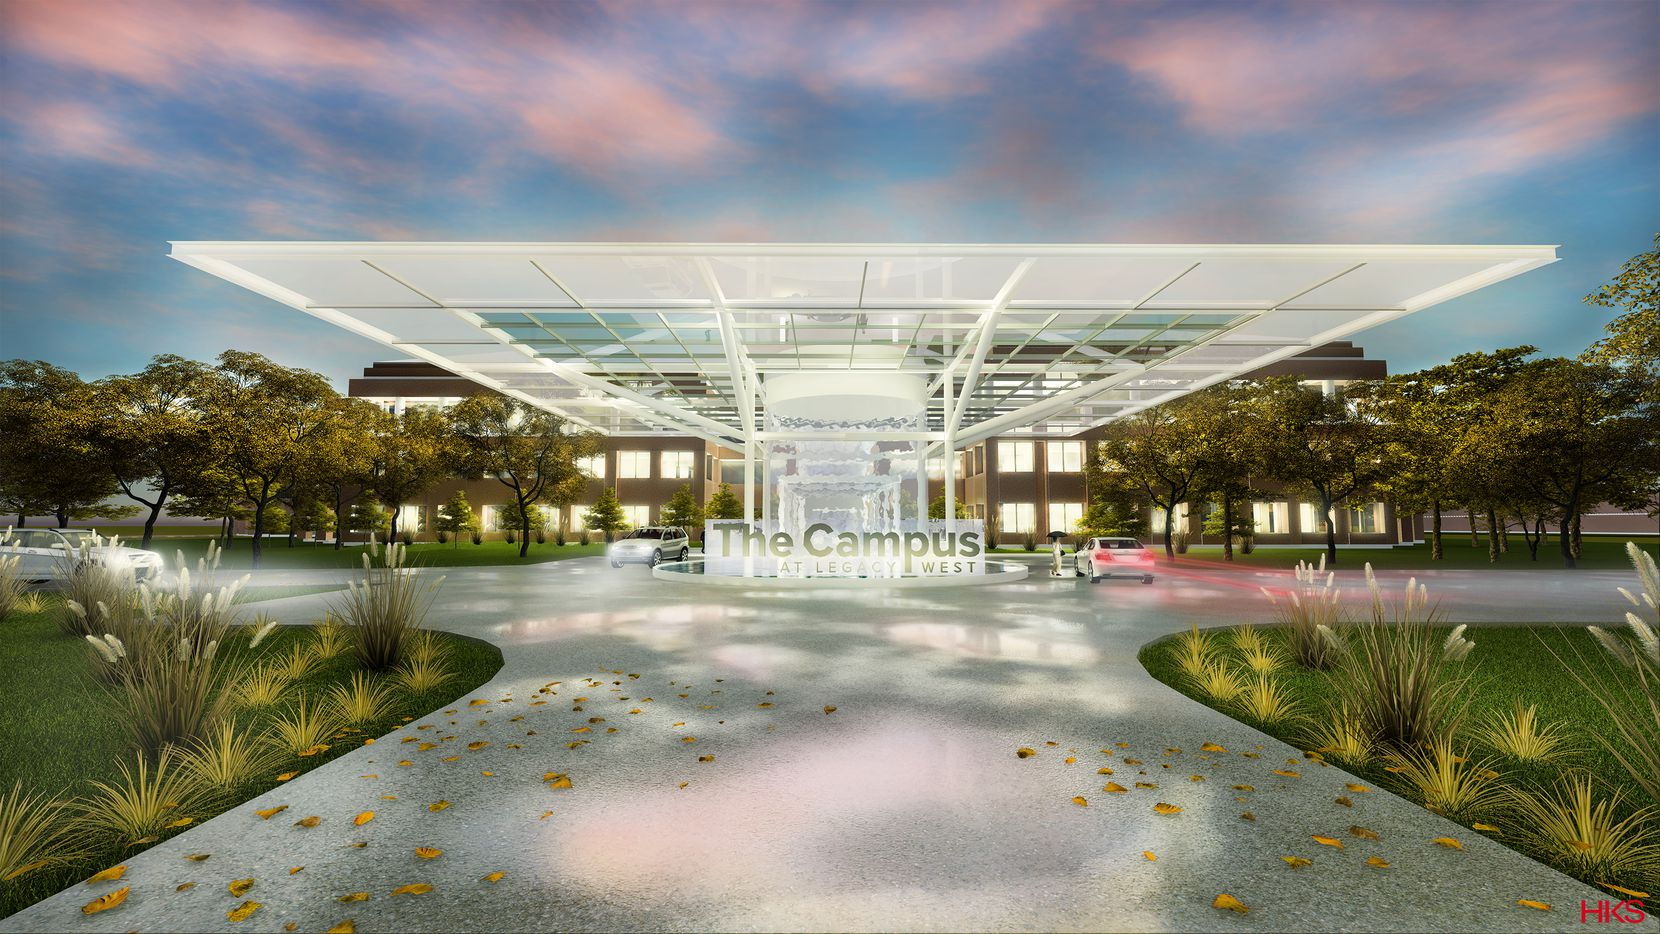 The former Penney headquarters complex will have 600,000 square feet of new office space to lease to tenants.